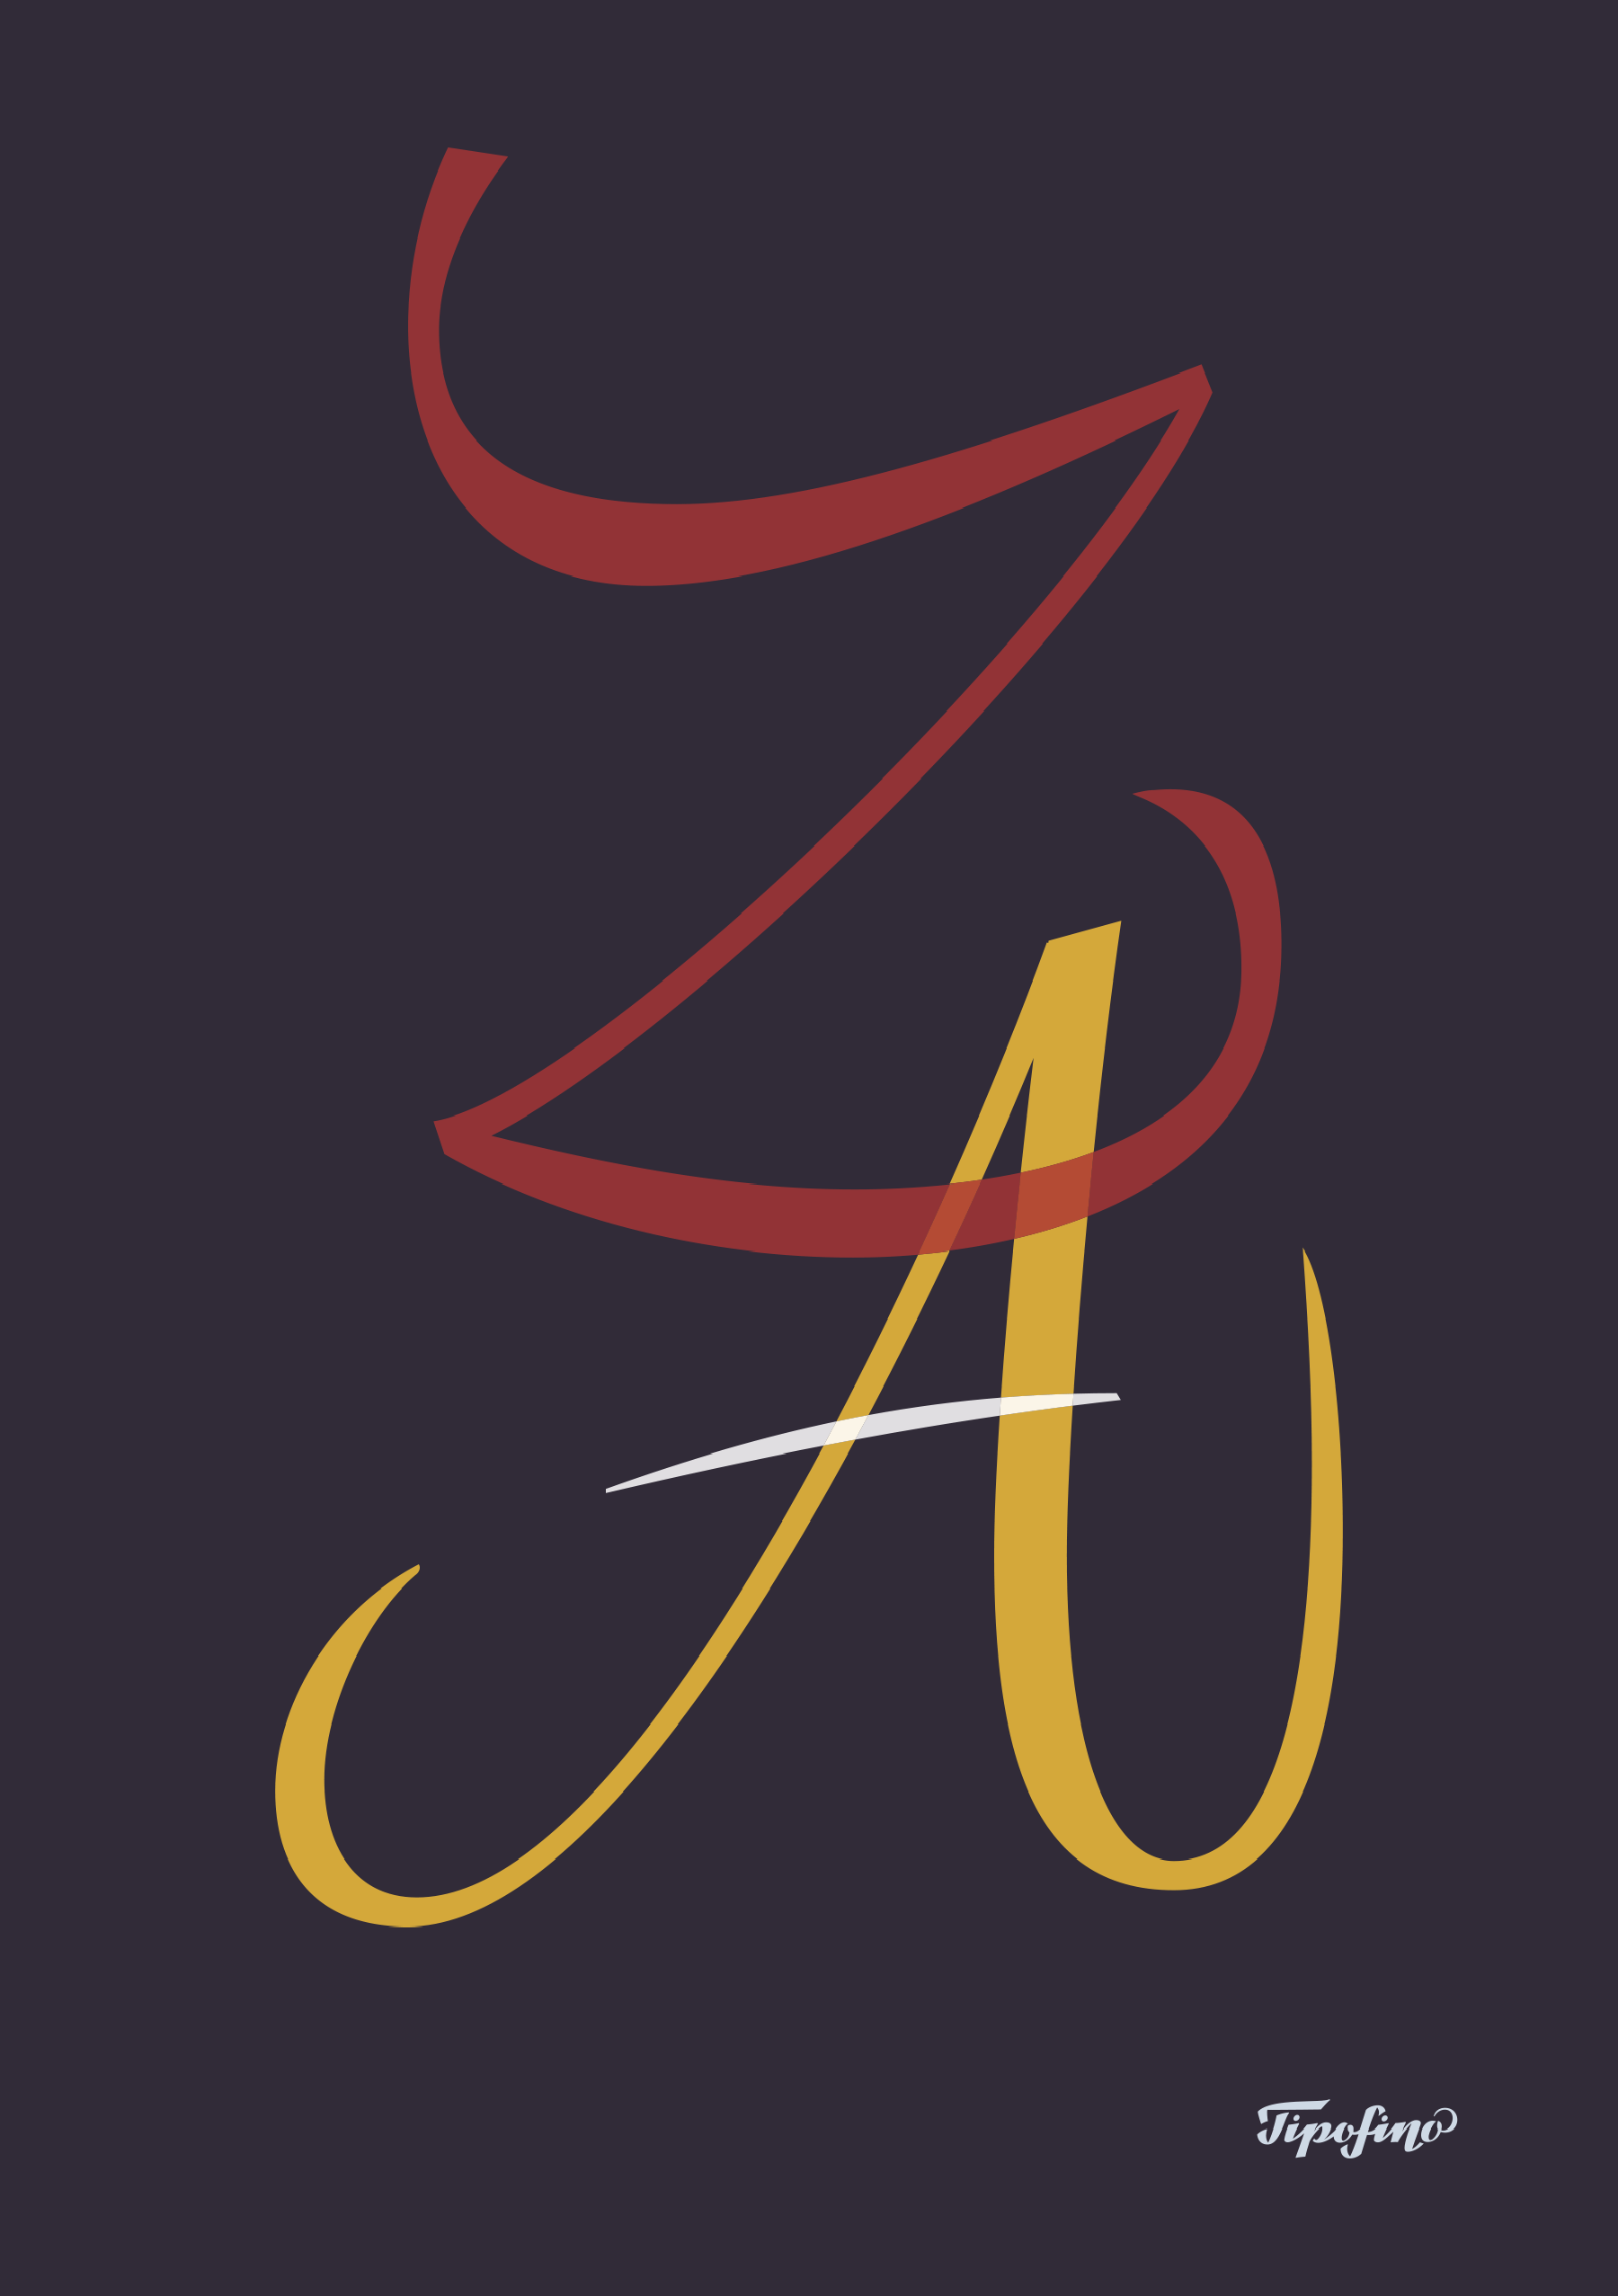 Typographic Poster: Z-A for Tipofino